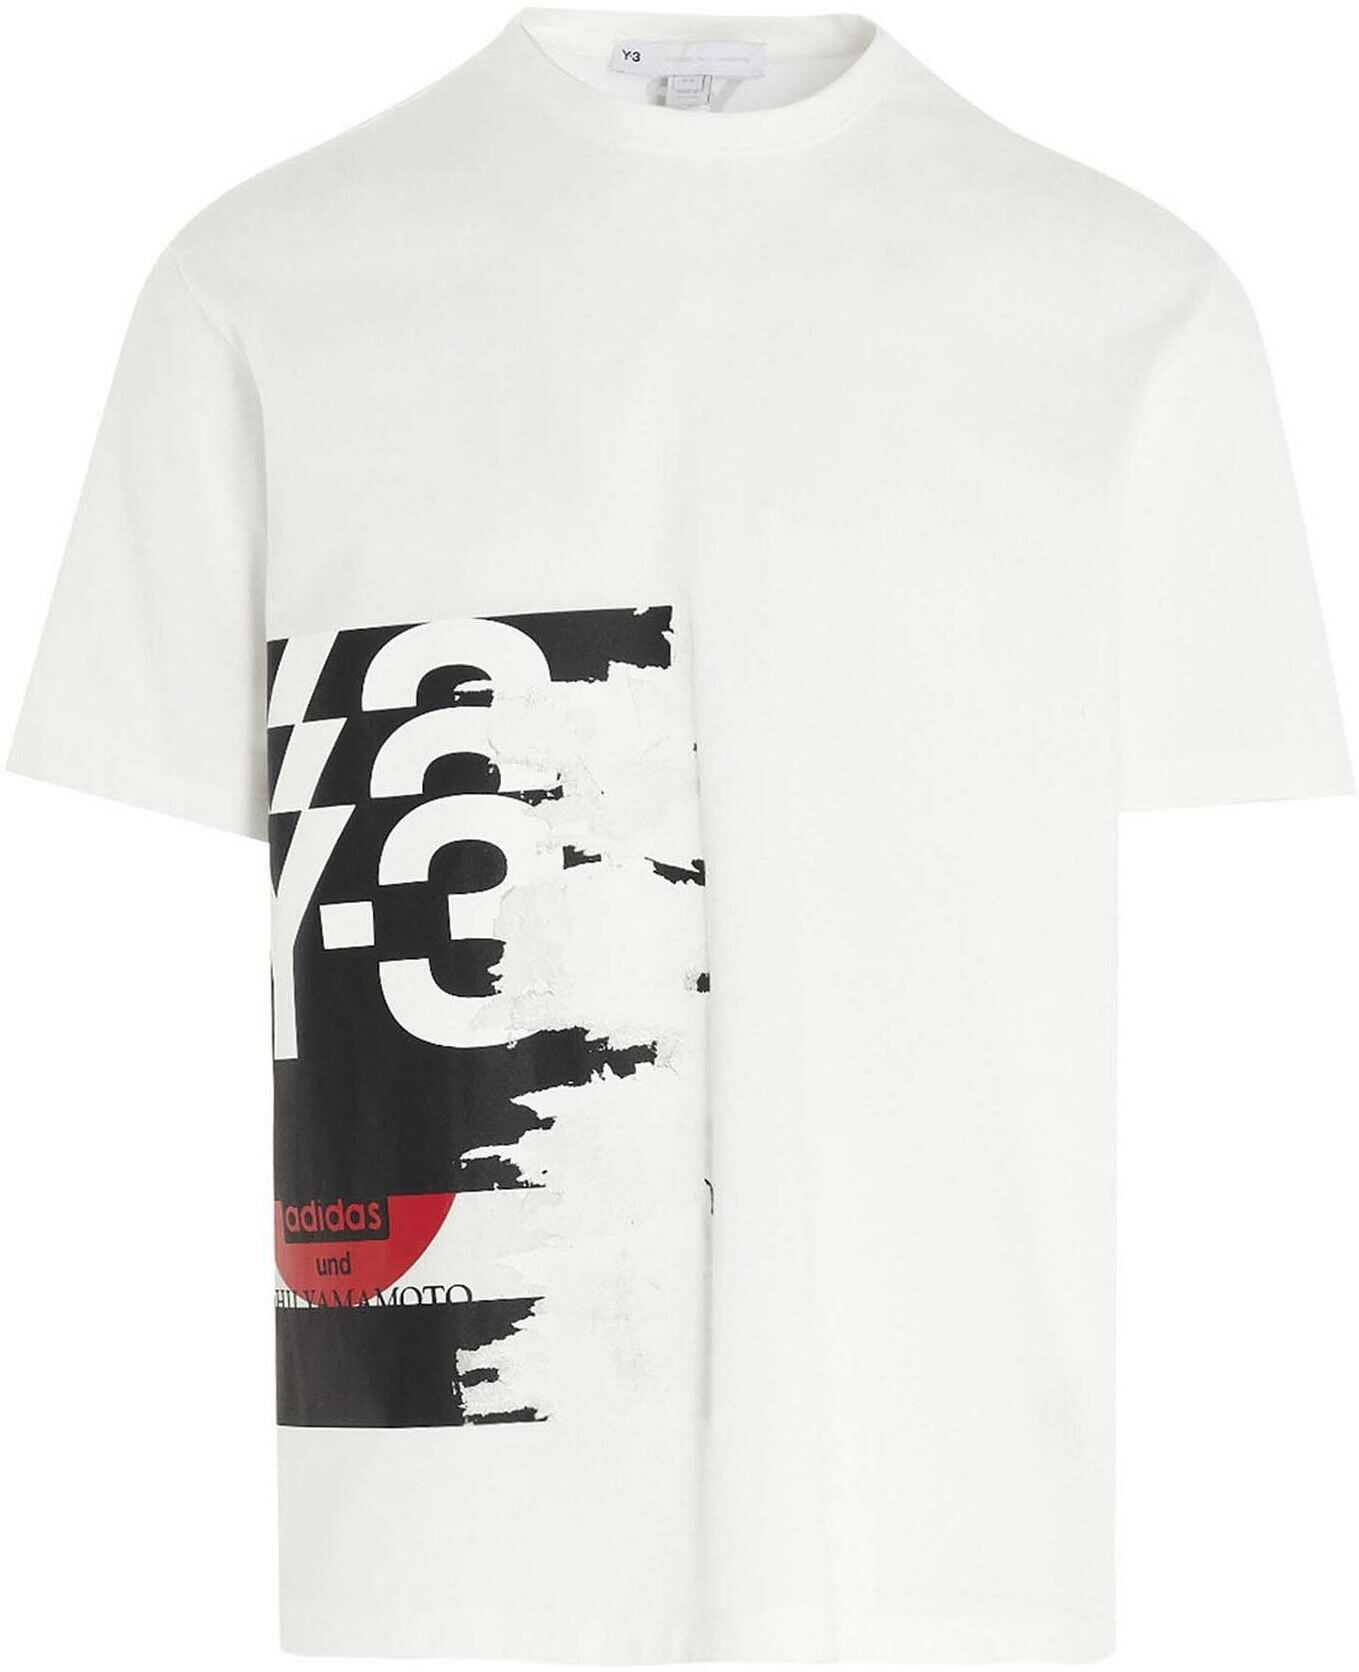 Y-3 Ch1 Graphic T-Shirt In White White